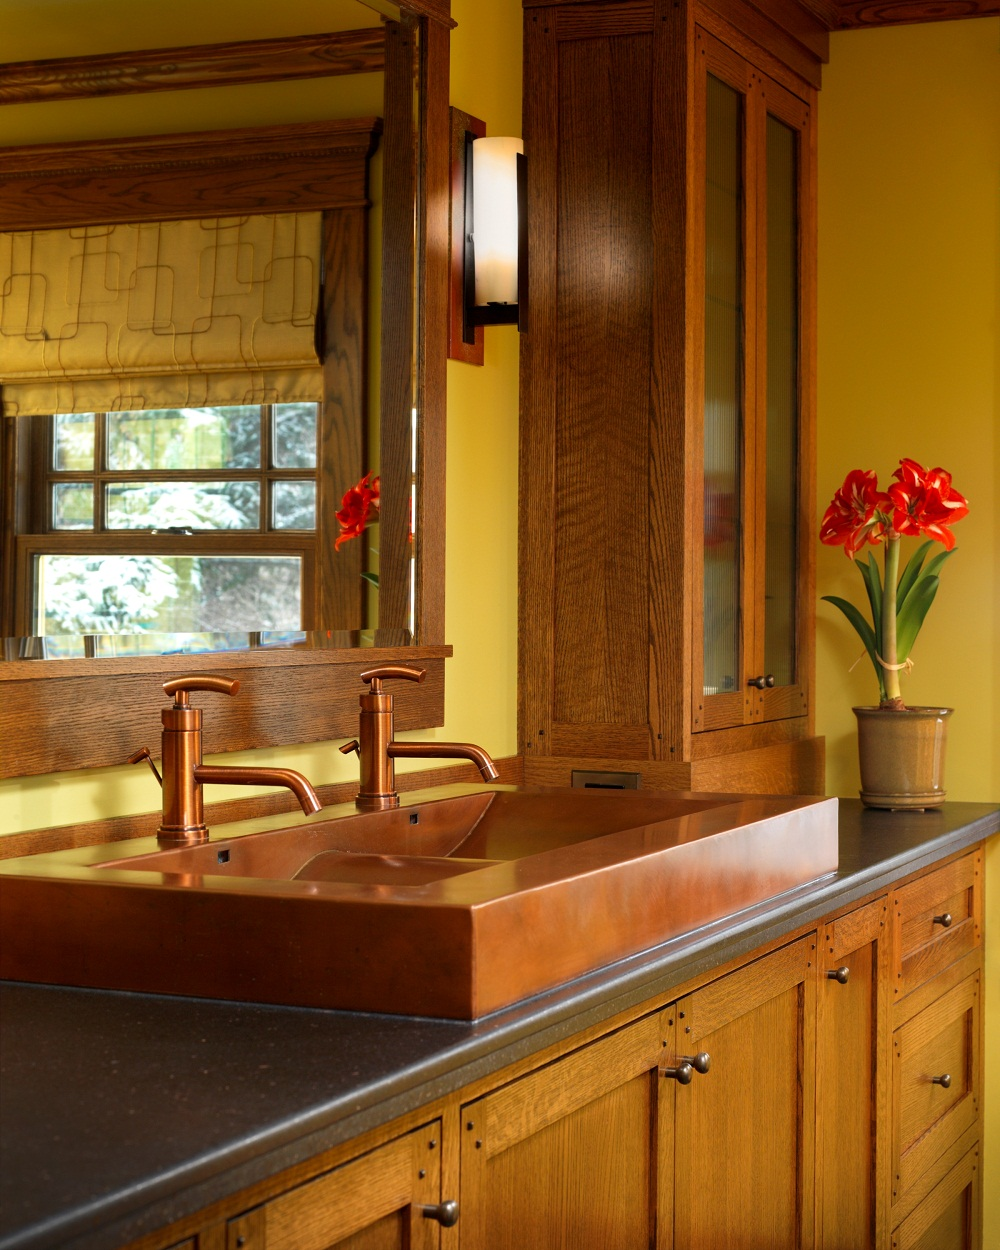 Bathroom And Kitchen Remodeling For A Bi Level Home: Trough Sinks For Efficient Bathroom And Kitchen Ideas